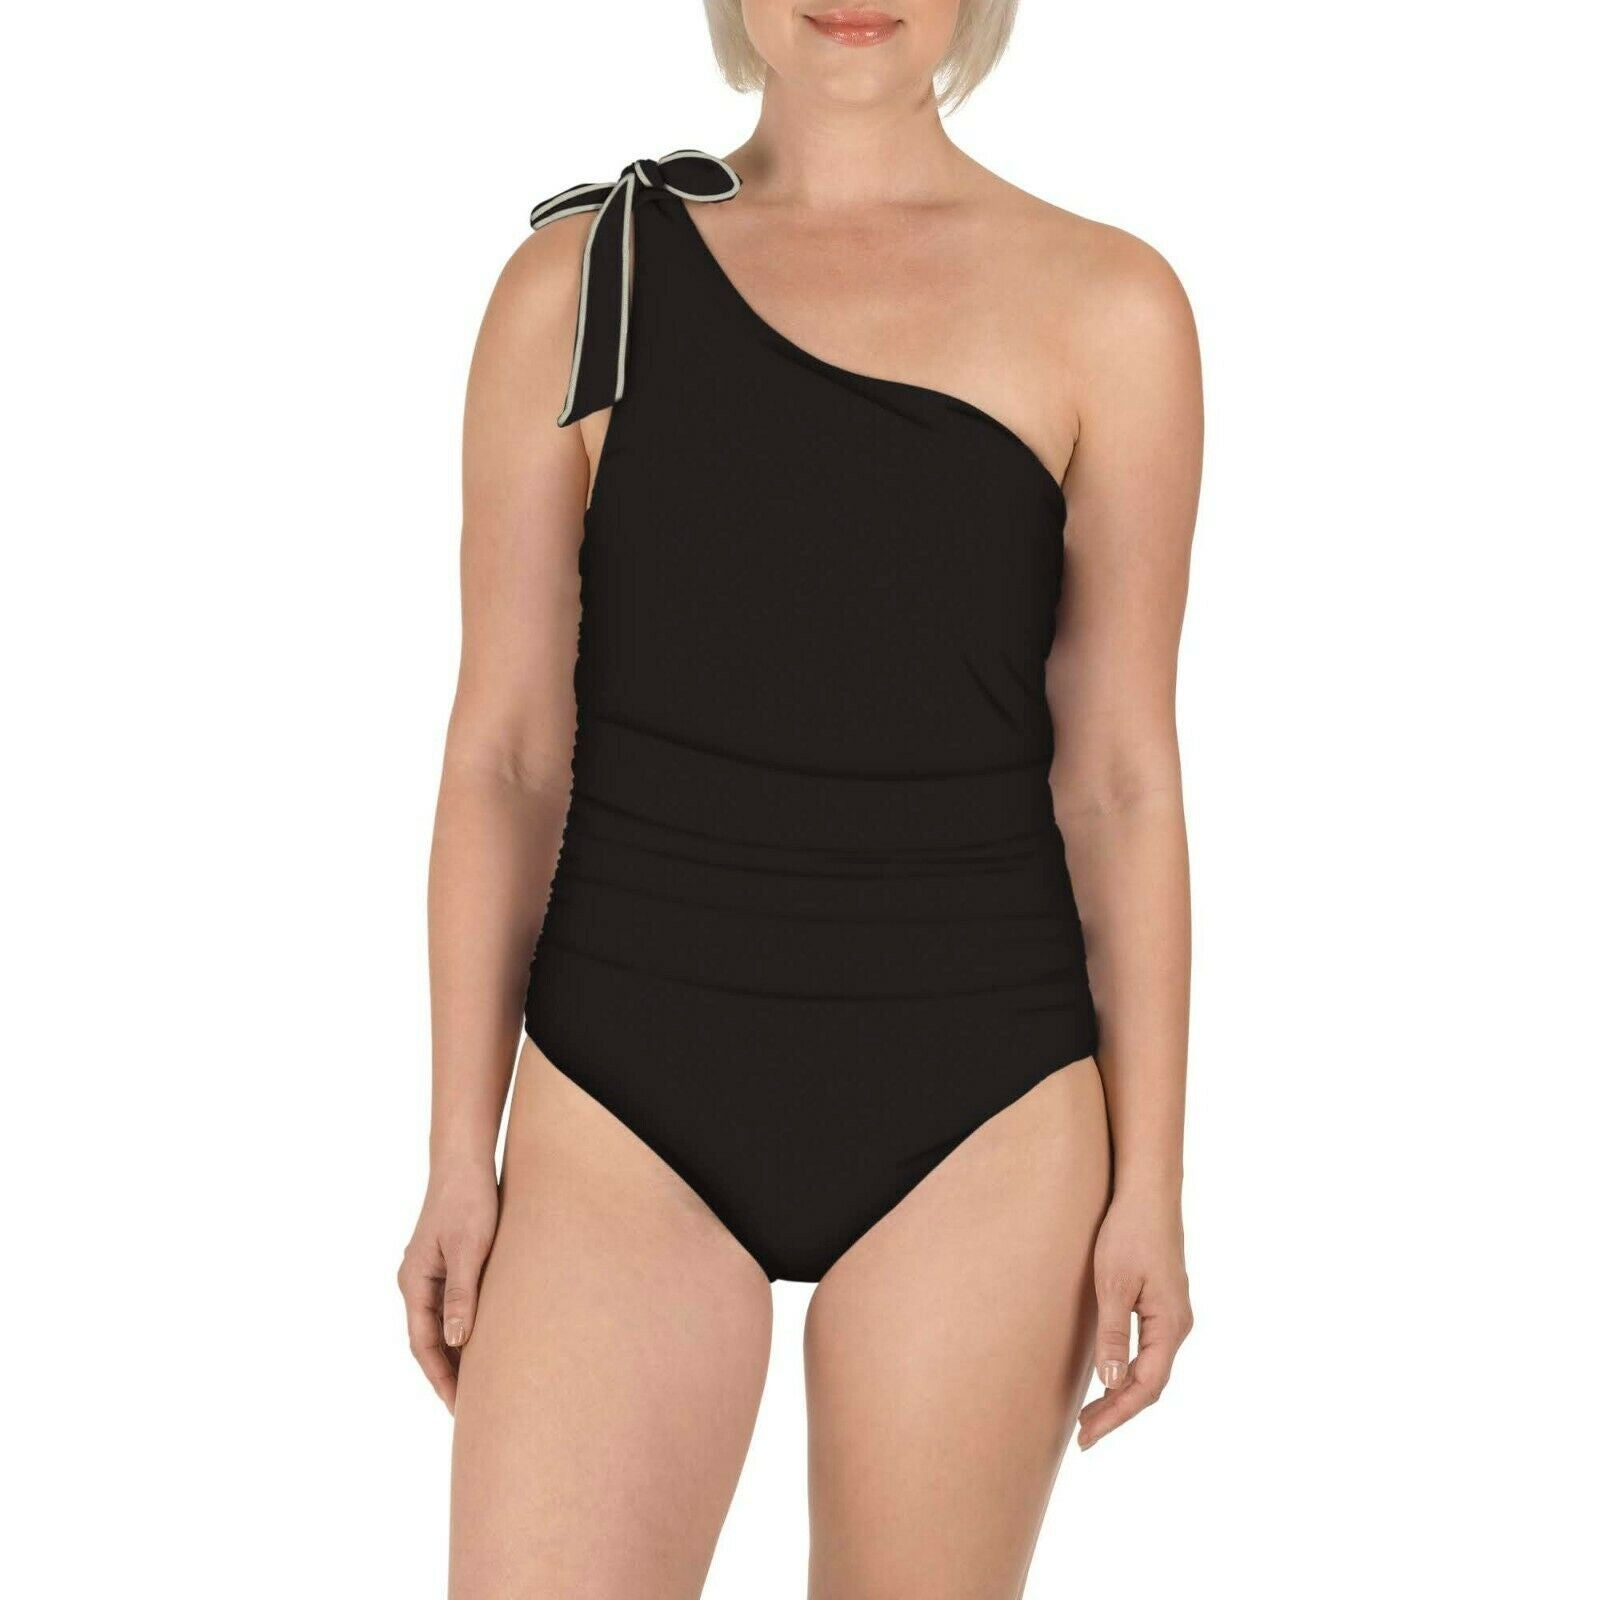 Carole Hochman Tie Asymmetrical One-Piece Swimsuit, Black, Size:14 - BrandsForLess.CO